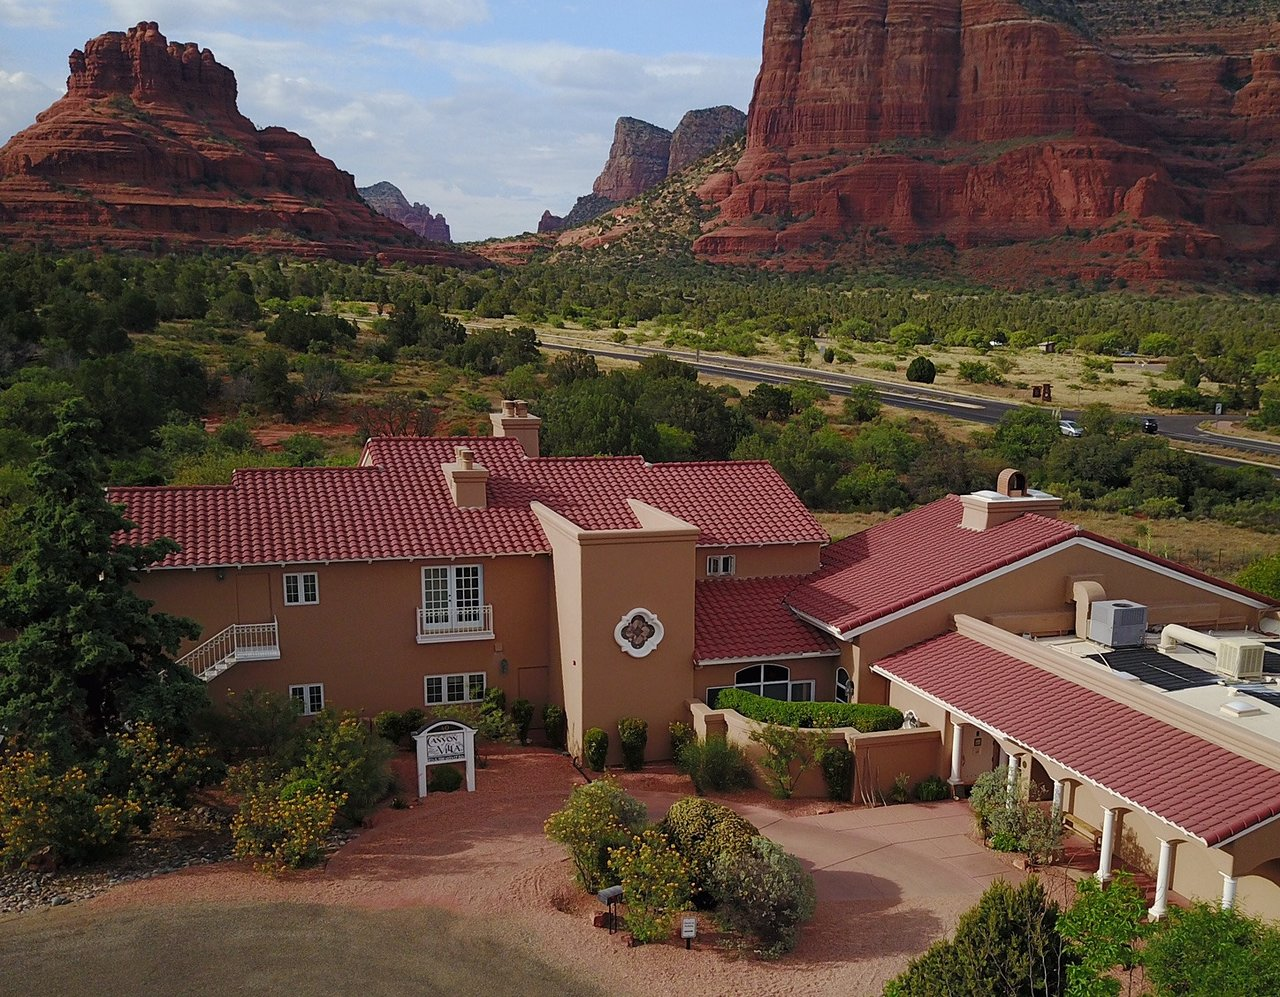 Cucina Restaurant Sedona Az Canyon Villa Bed And Breakfast Inn Of Sedona Updated 2019 Prices